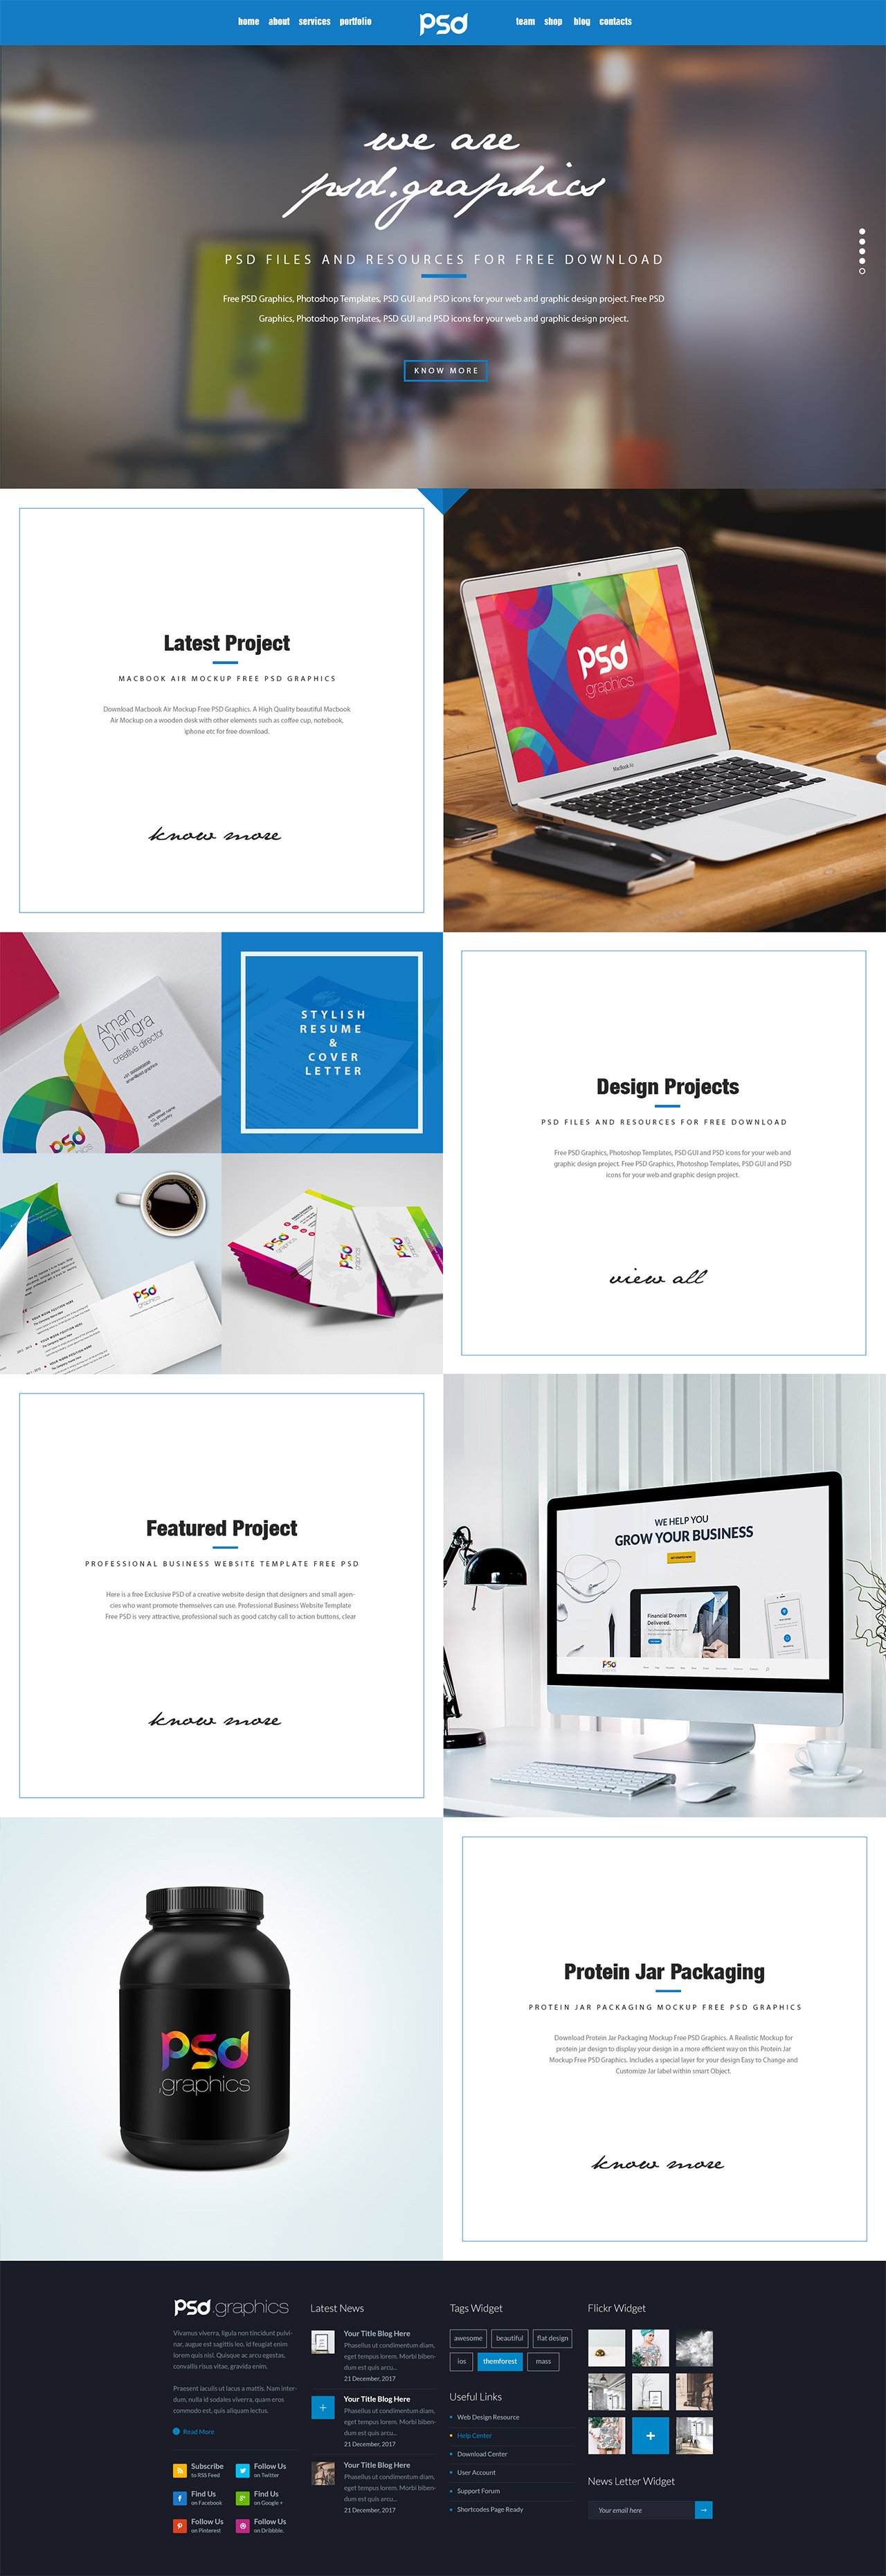 free portfolio website templates - personal portfolio website template free psd graphics